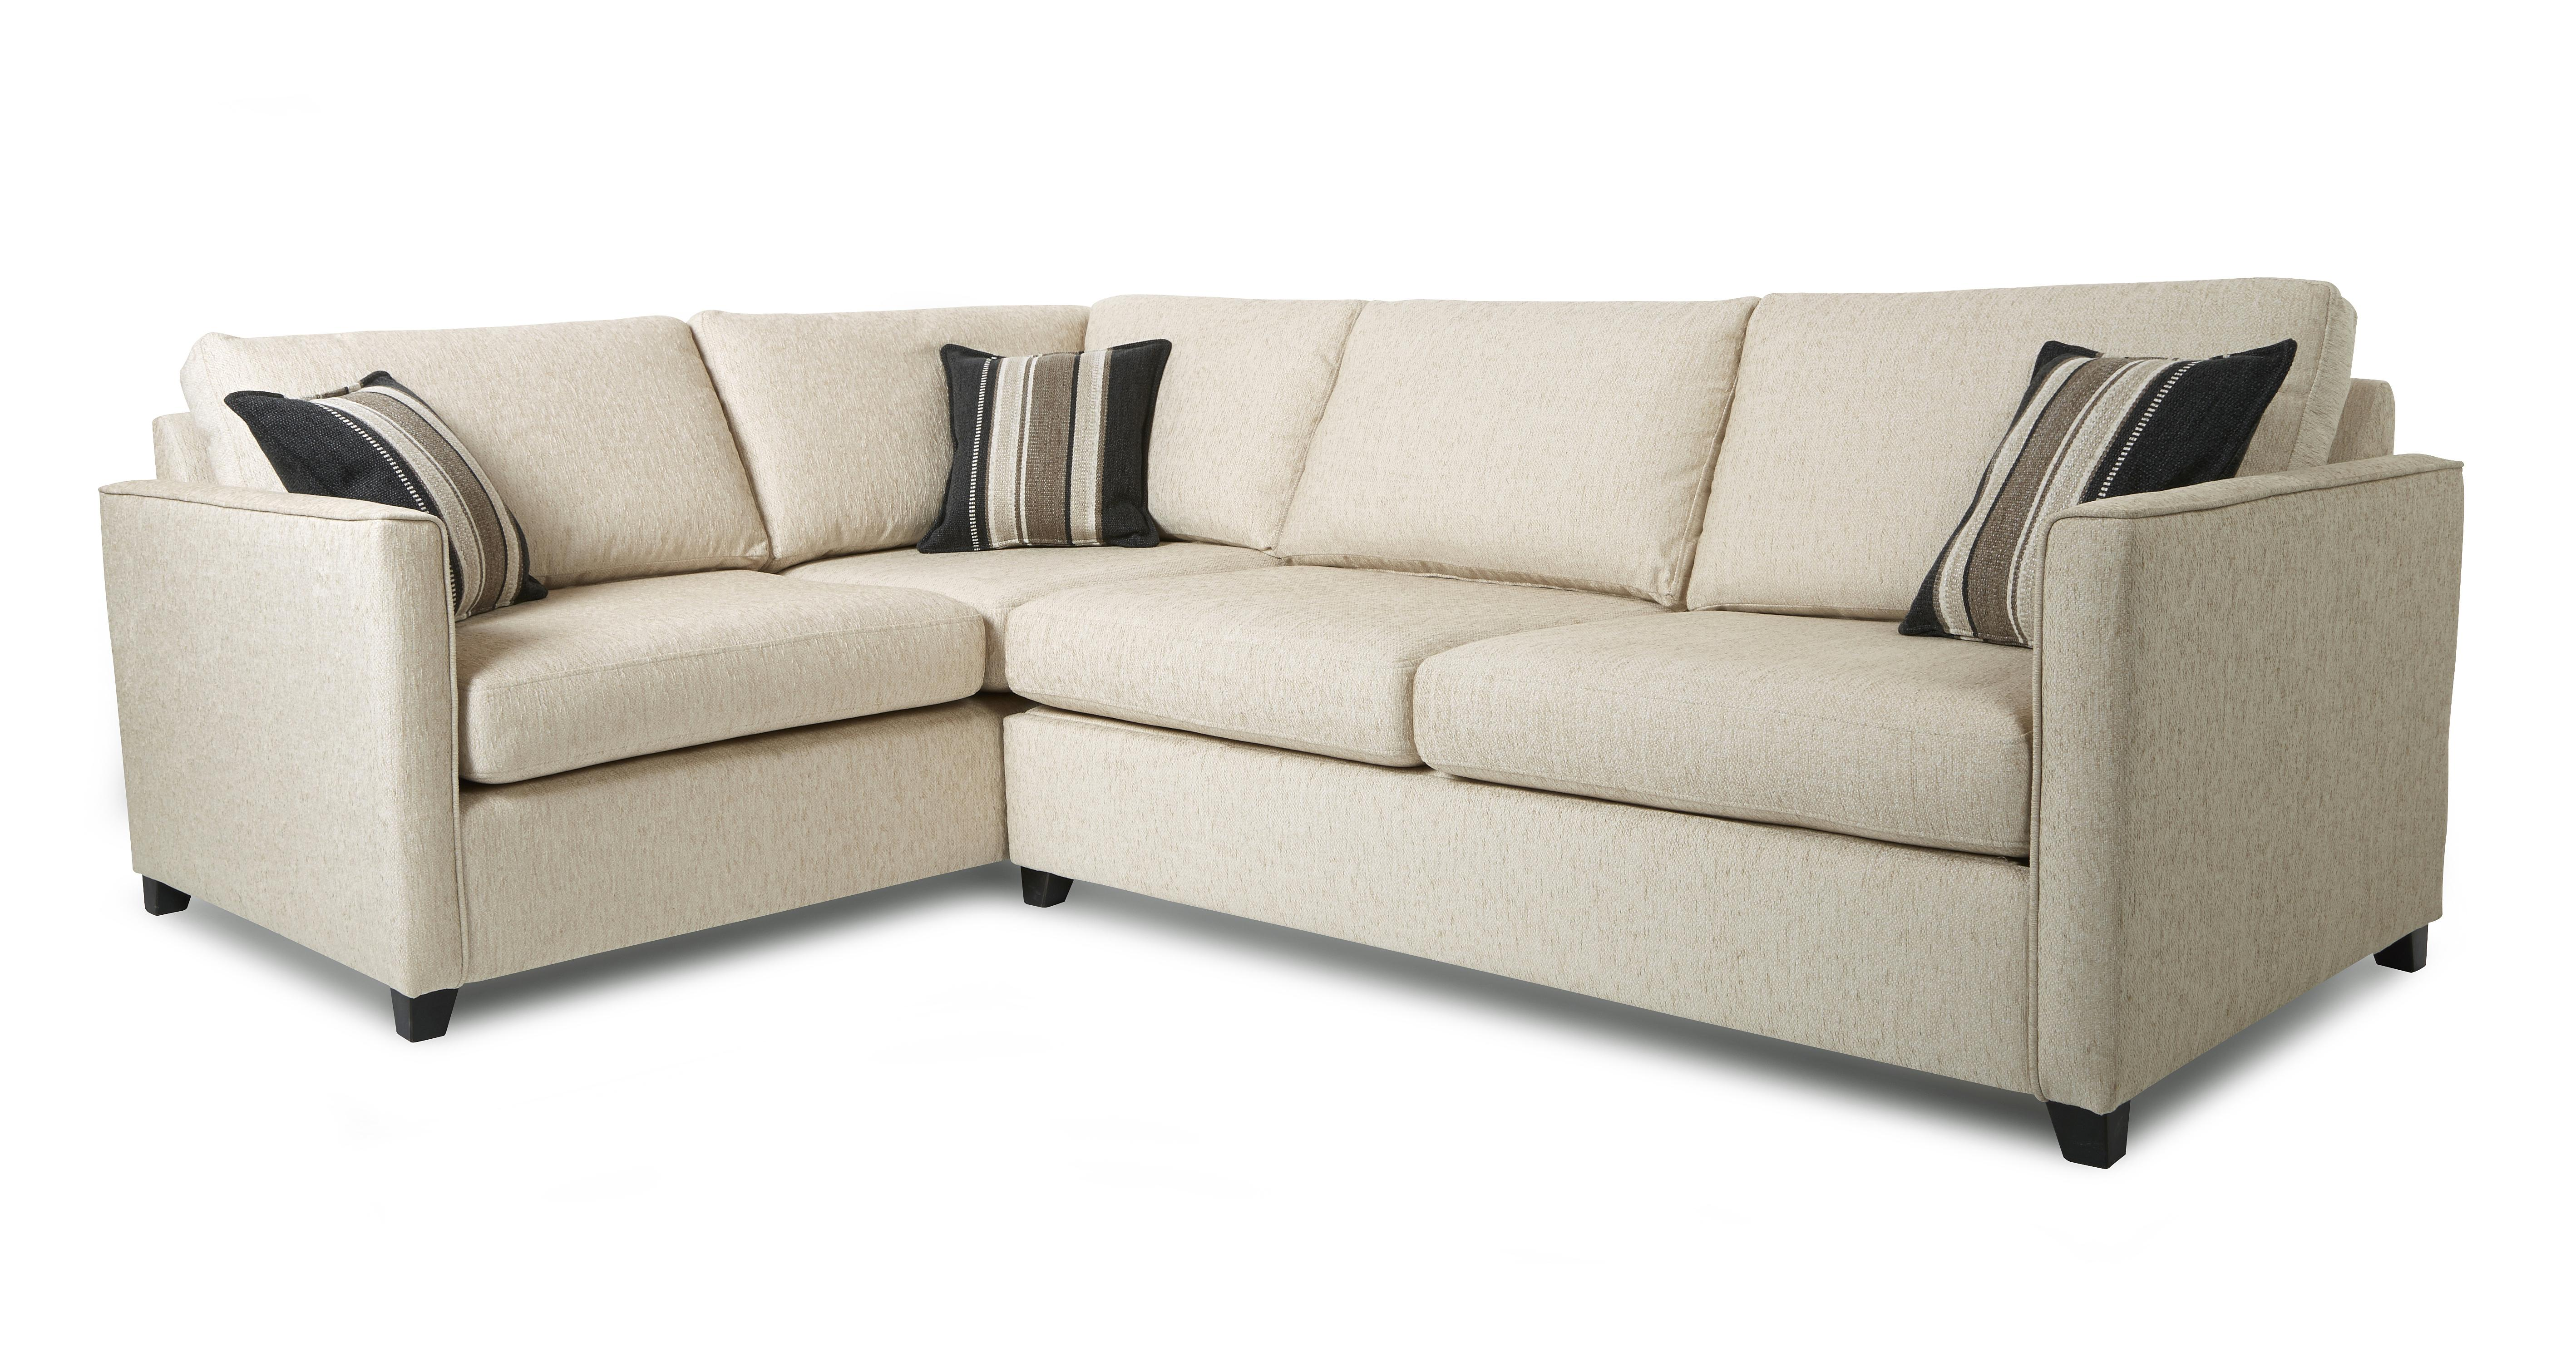 Lucia right arm facing corner sofa dfs for Sofa with only one arm